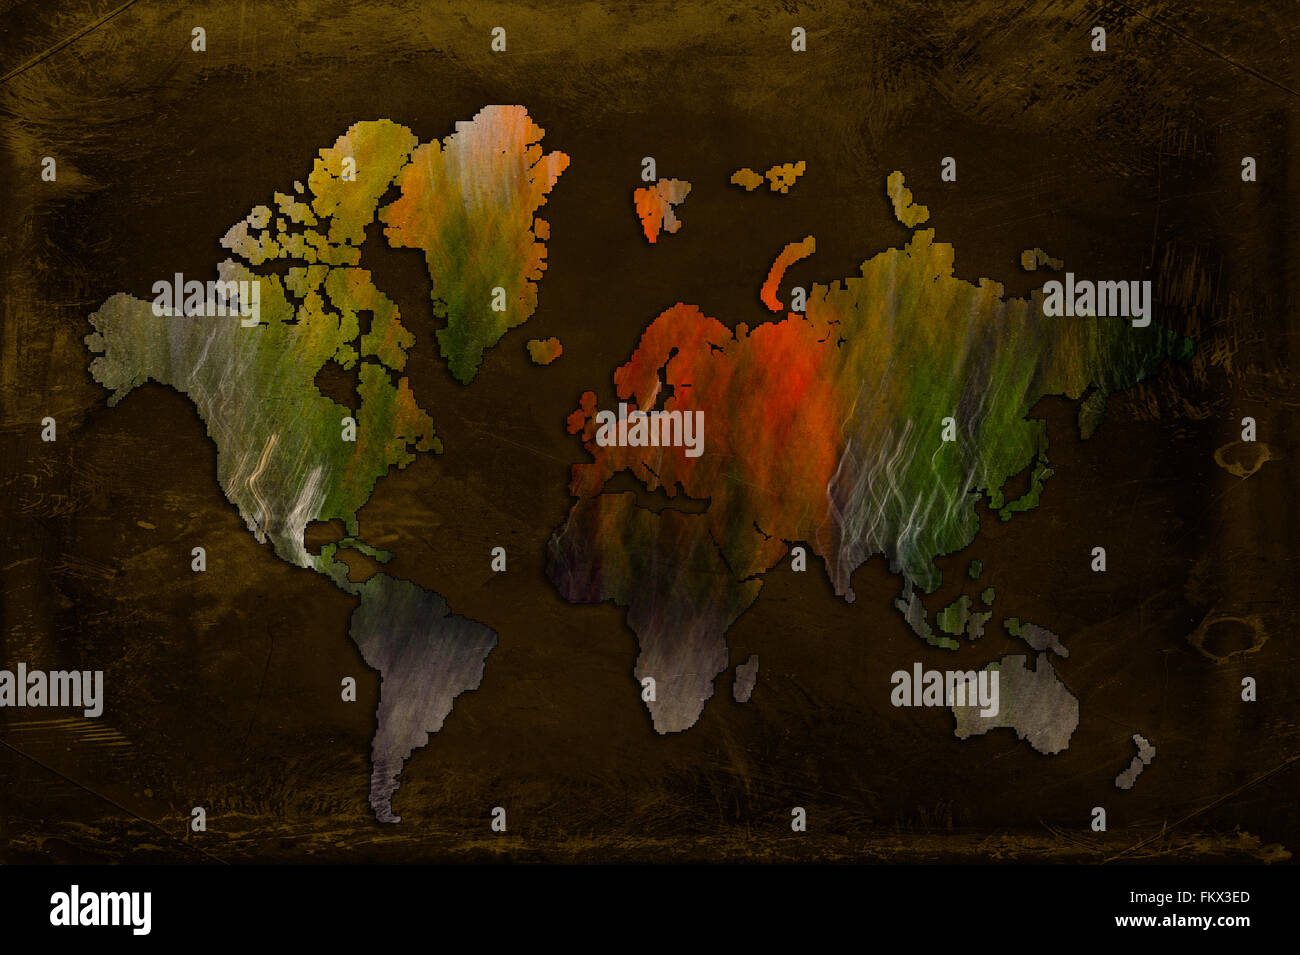 Artistic world map made from abstract photo. - Stock Image